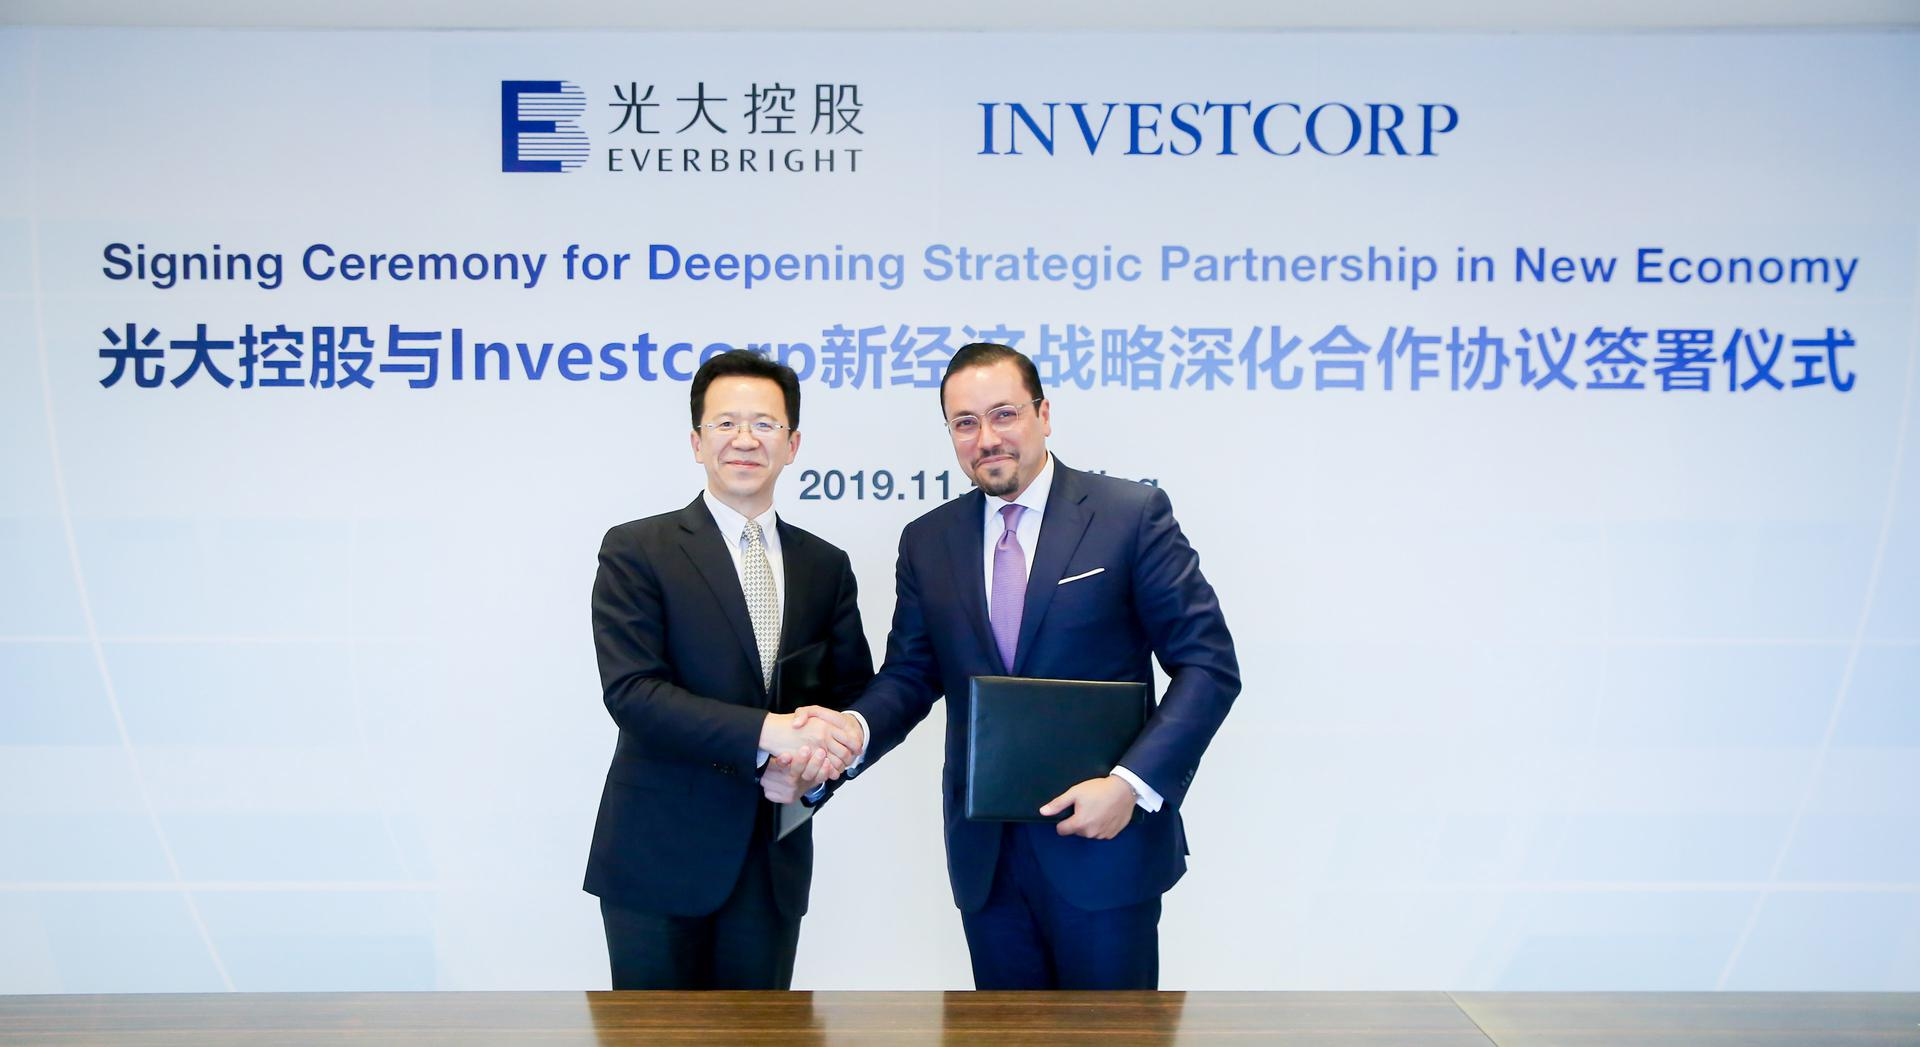 Zhao Wei, CEO of Everbright, shakes hands with Investcorp's co-CEO Hazem Ben-Gacem